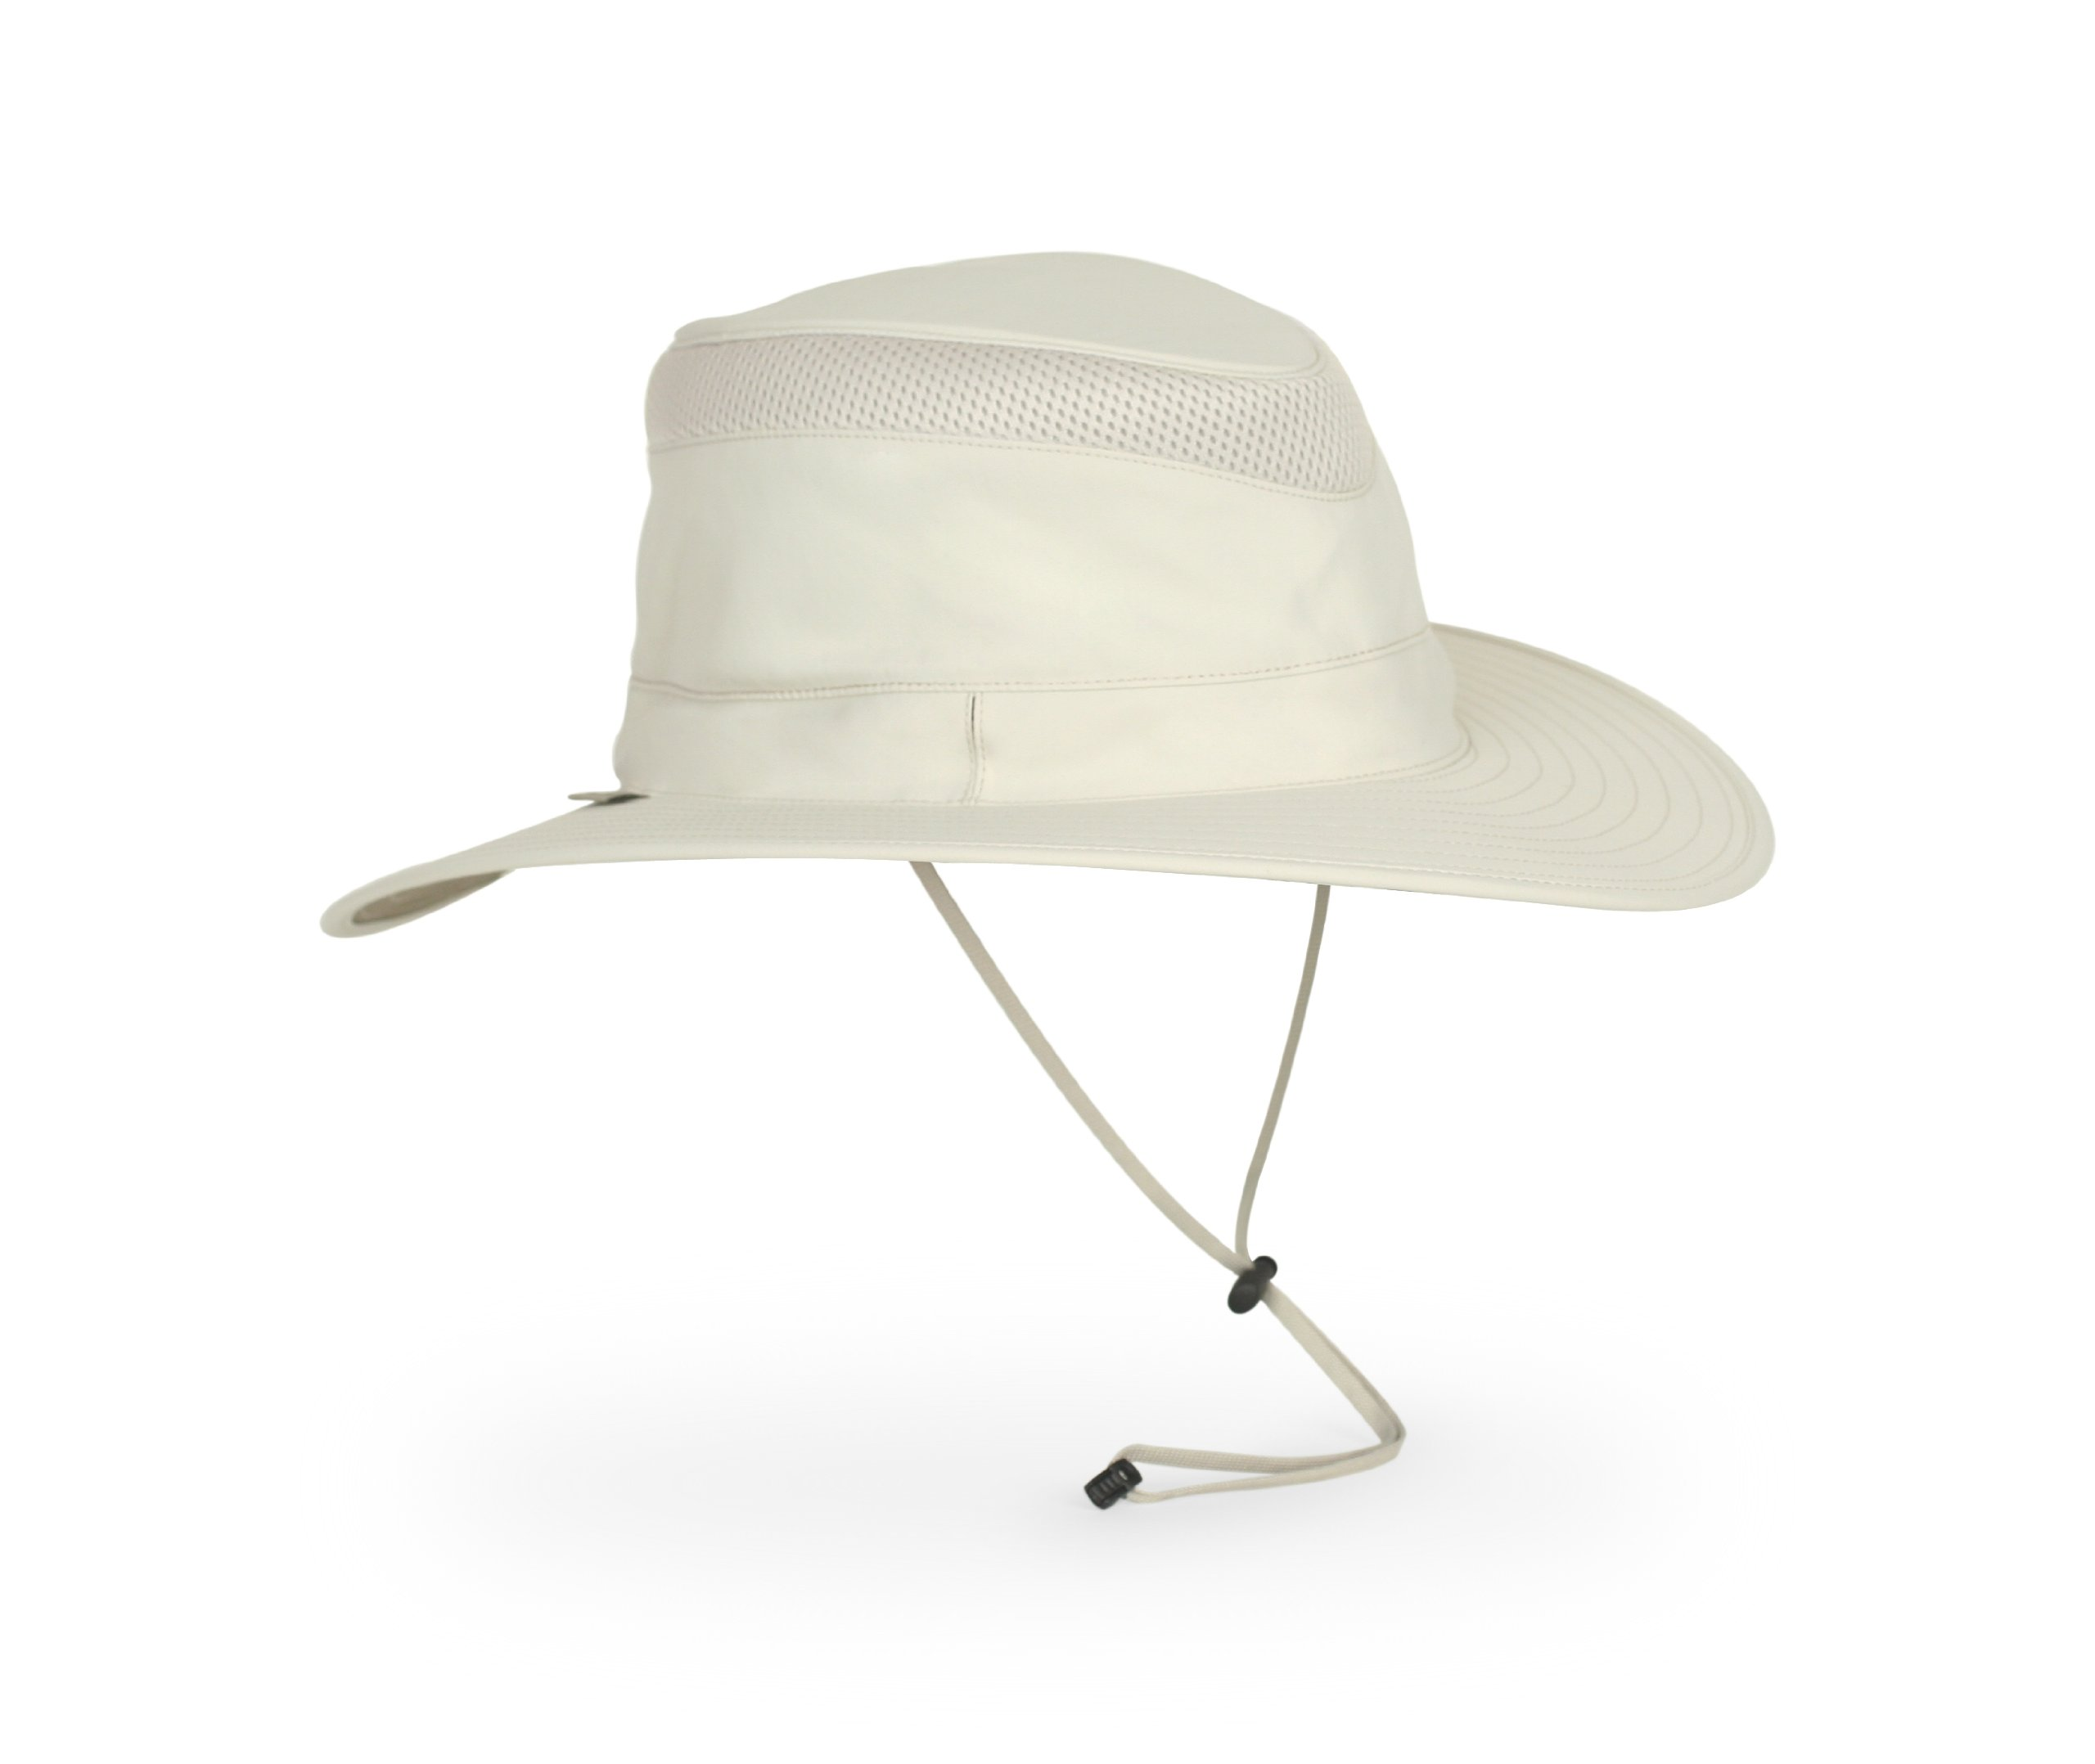 Sunday Afternoons Charter Hat, Large, Cream/Sand